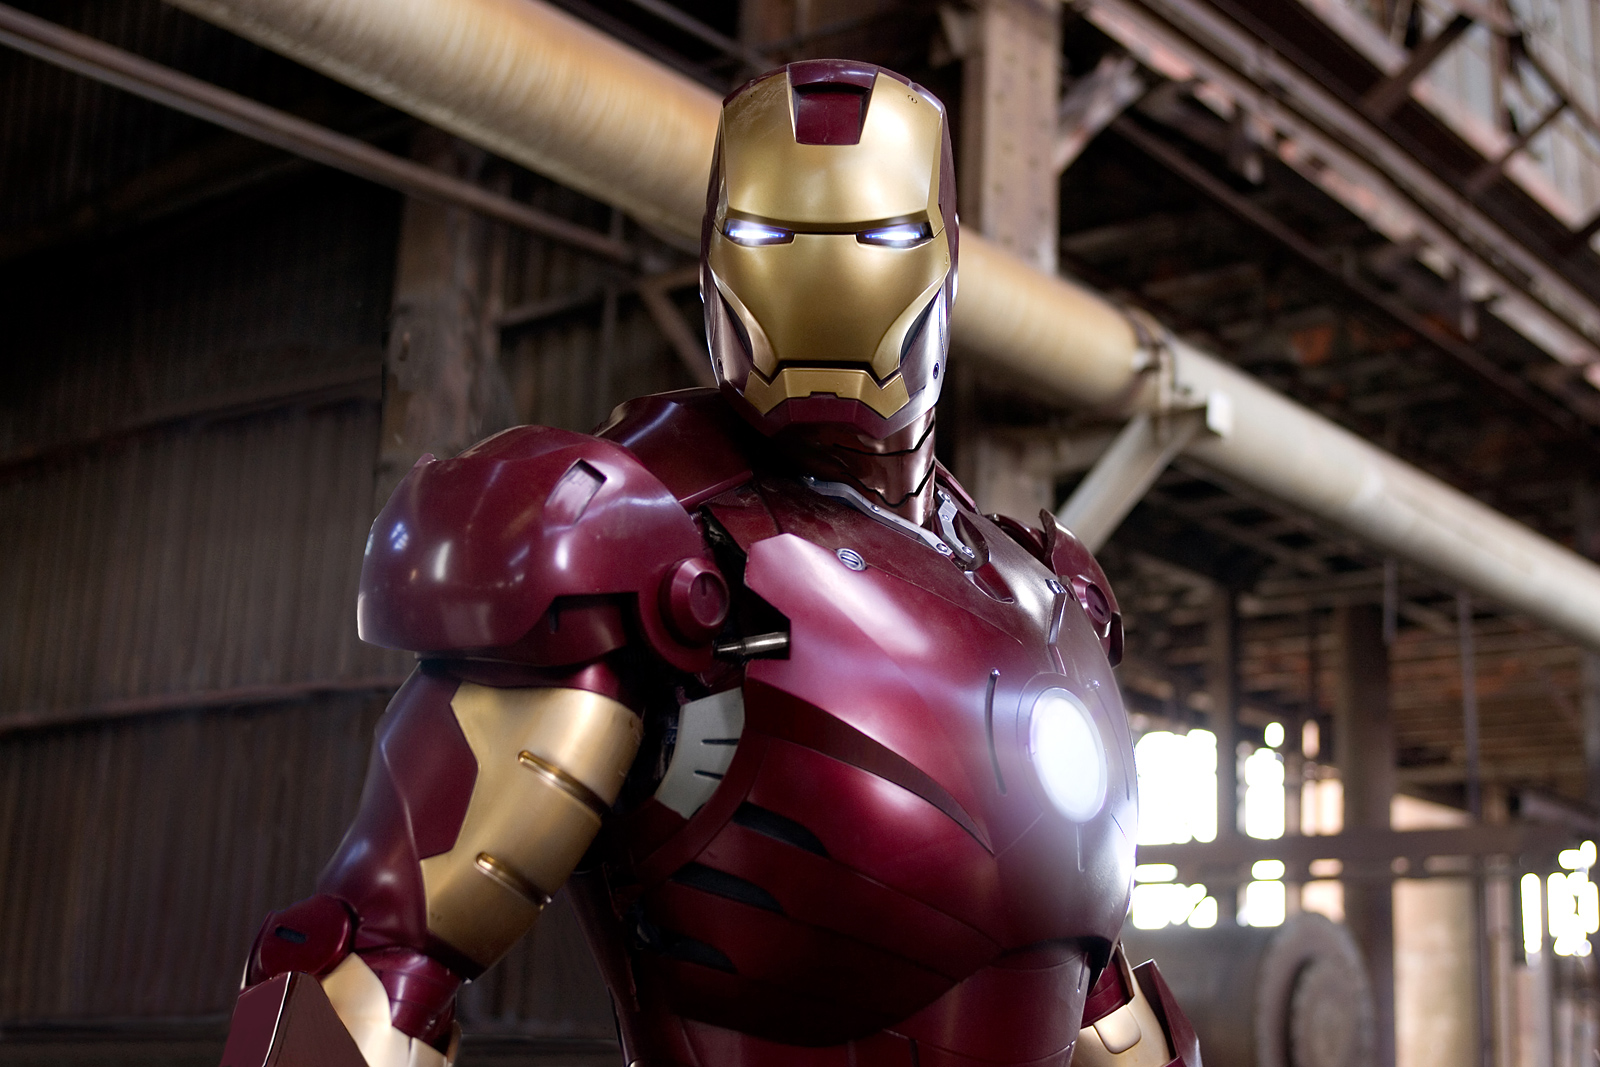 https://i1.wp.com/www.firstshowing.net/img/ironman-08preview-lg.jpg